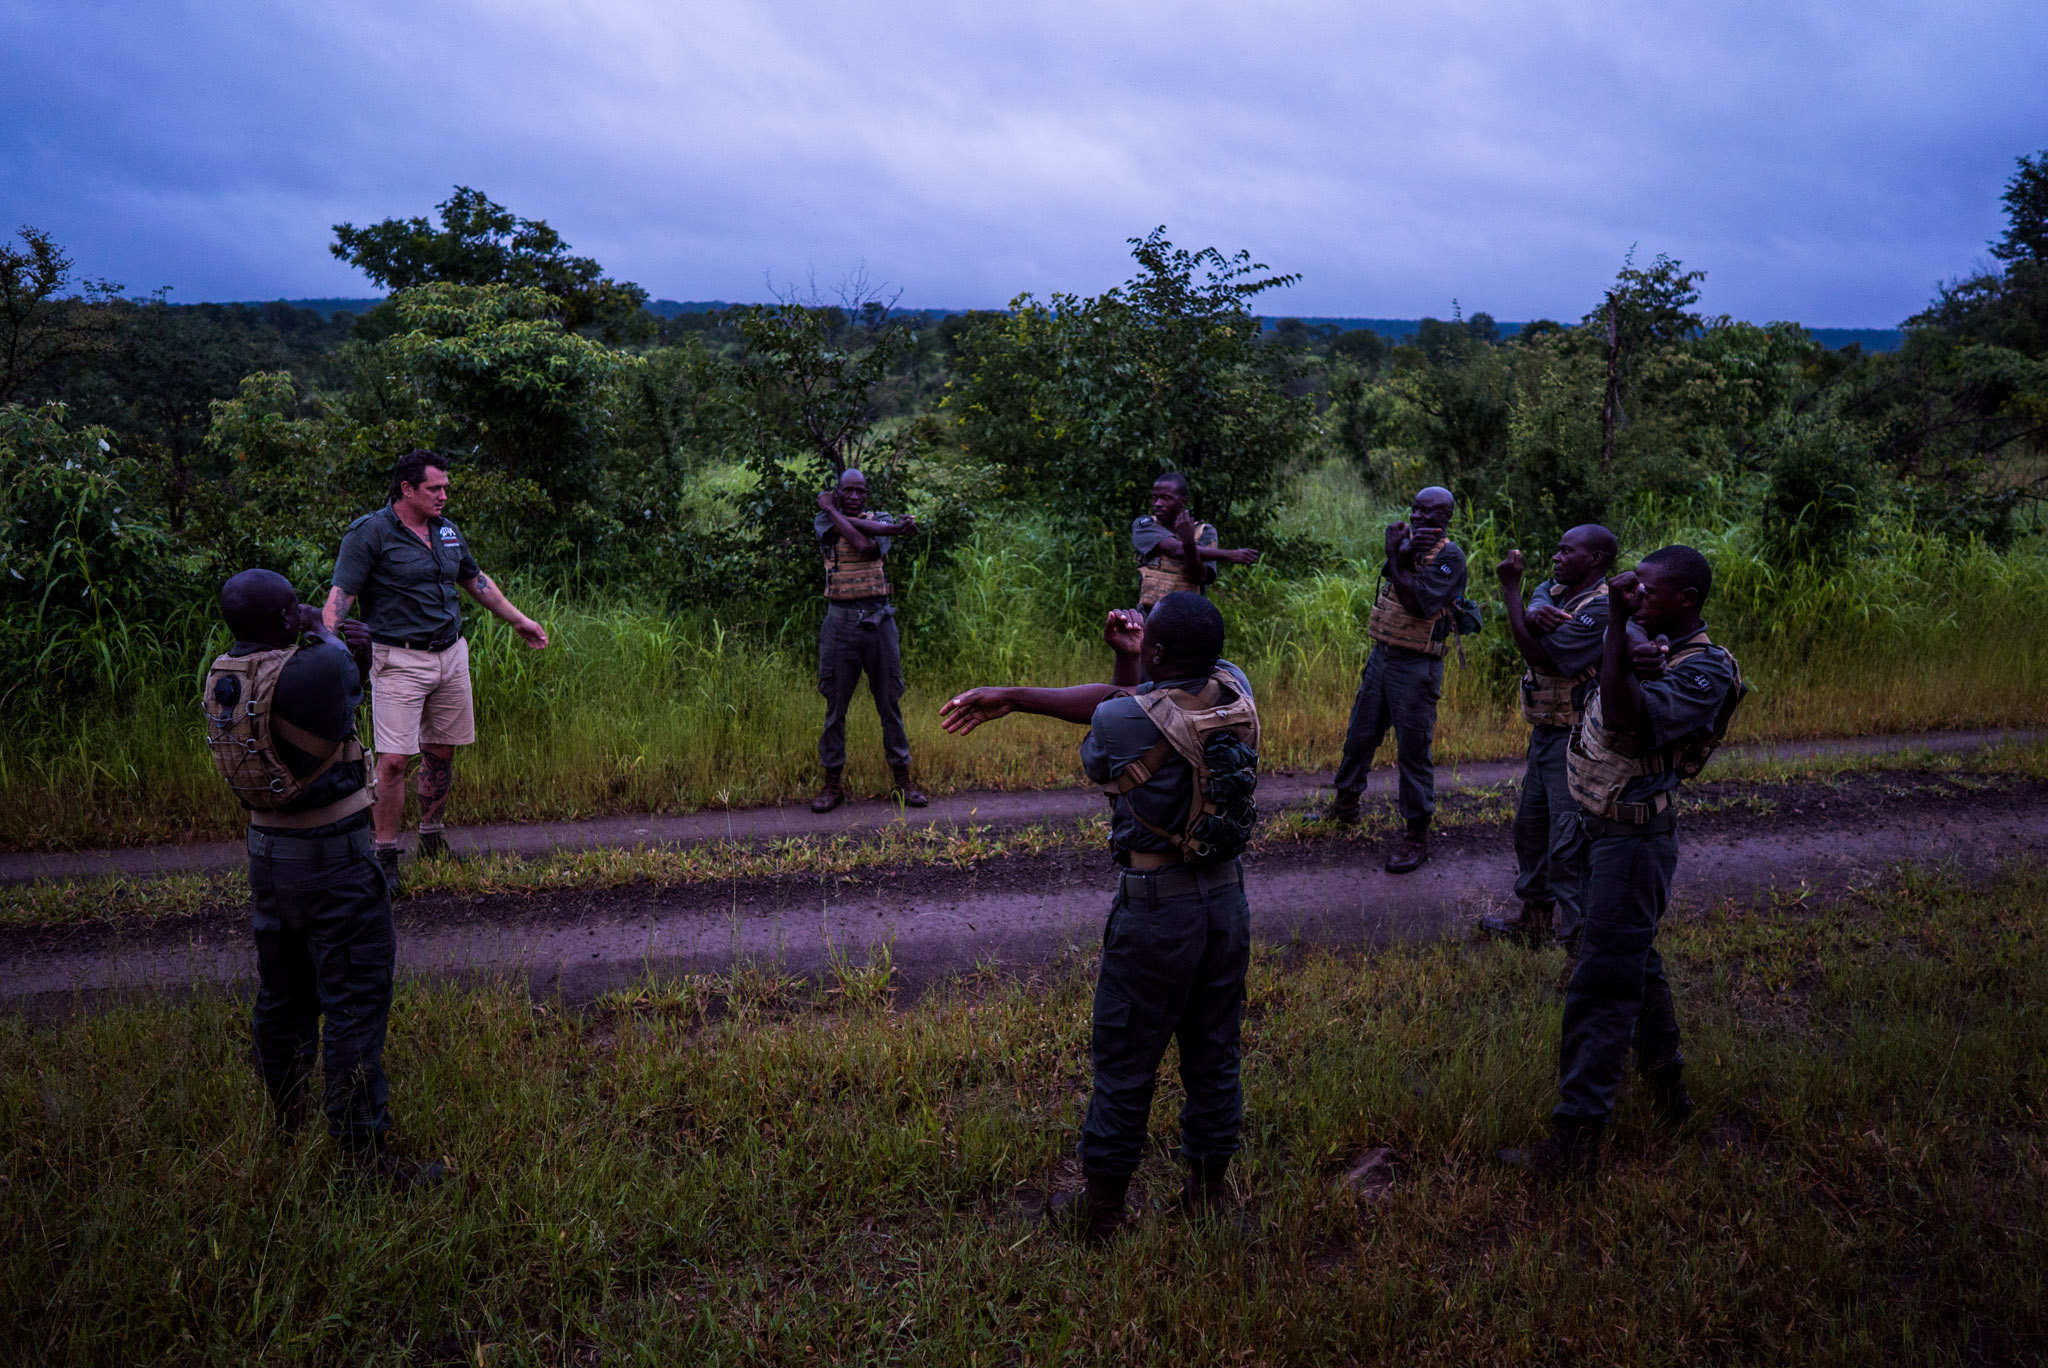 Damien Mander and IAPF rangers warming up before morning training in Zimbabwe's Stanley and Livingstone Game Reserve—Photograph by Michael Hathorn, Ginkgo Agency